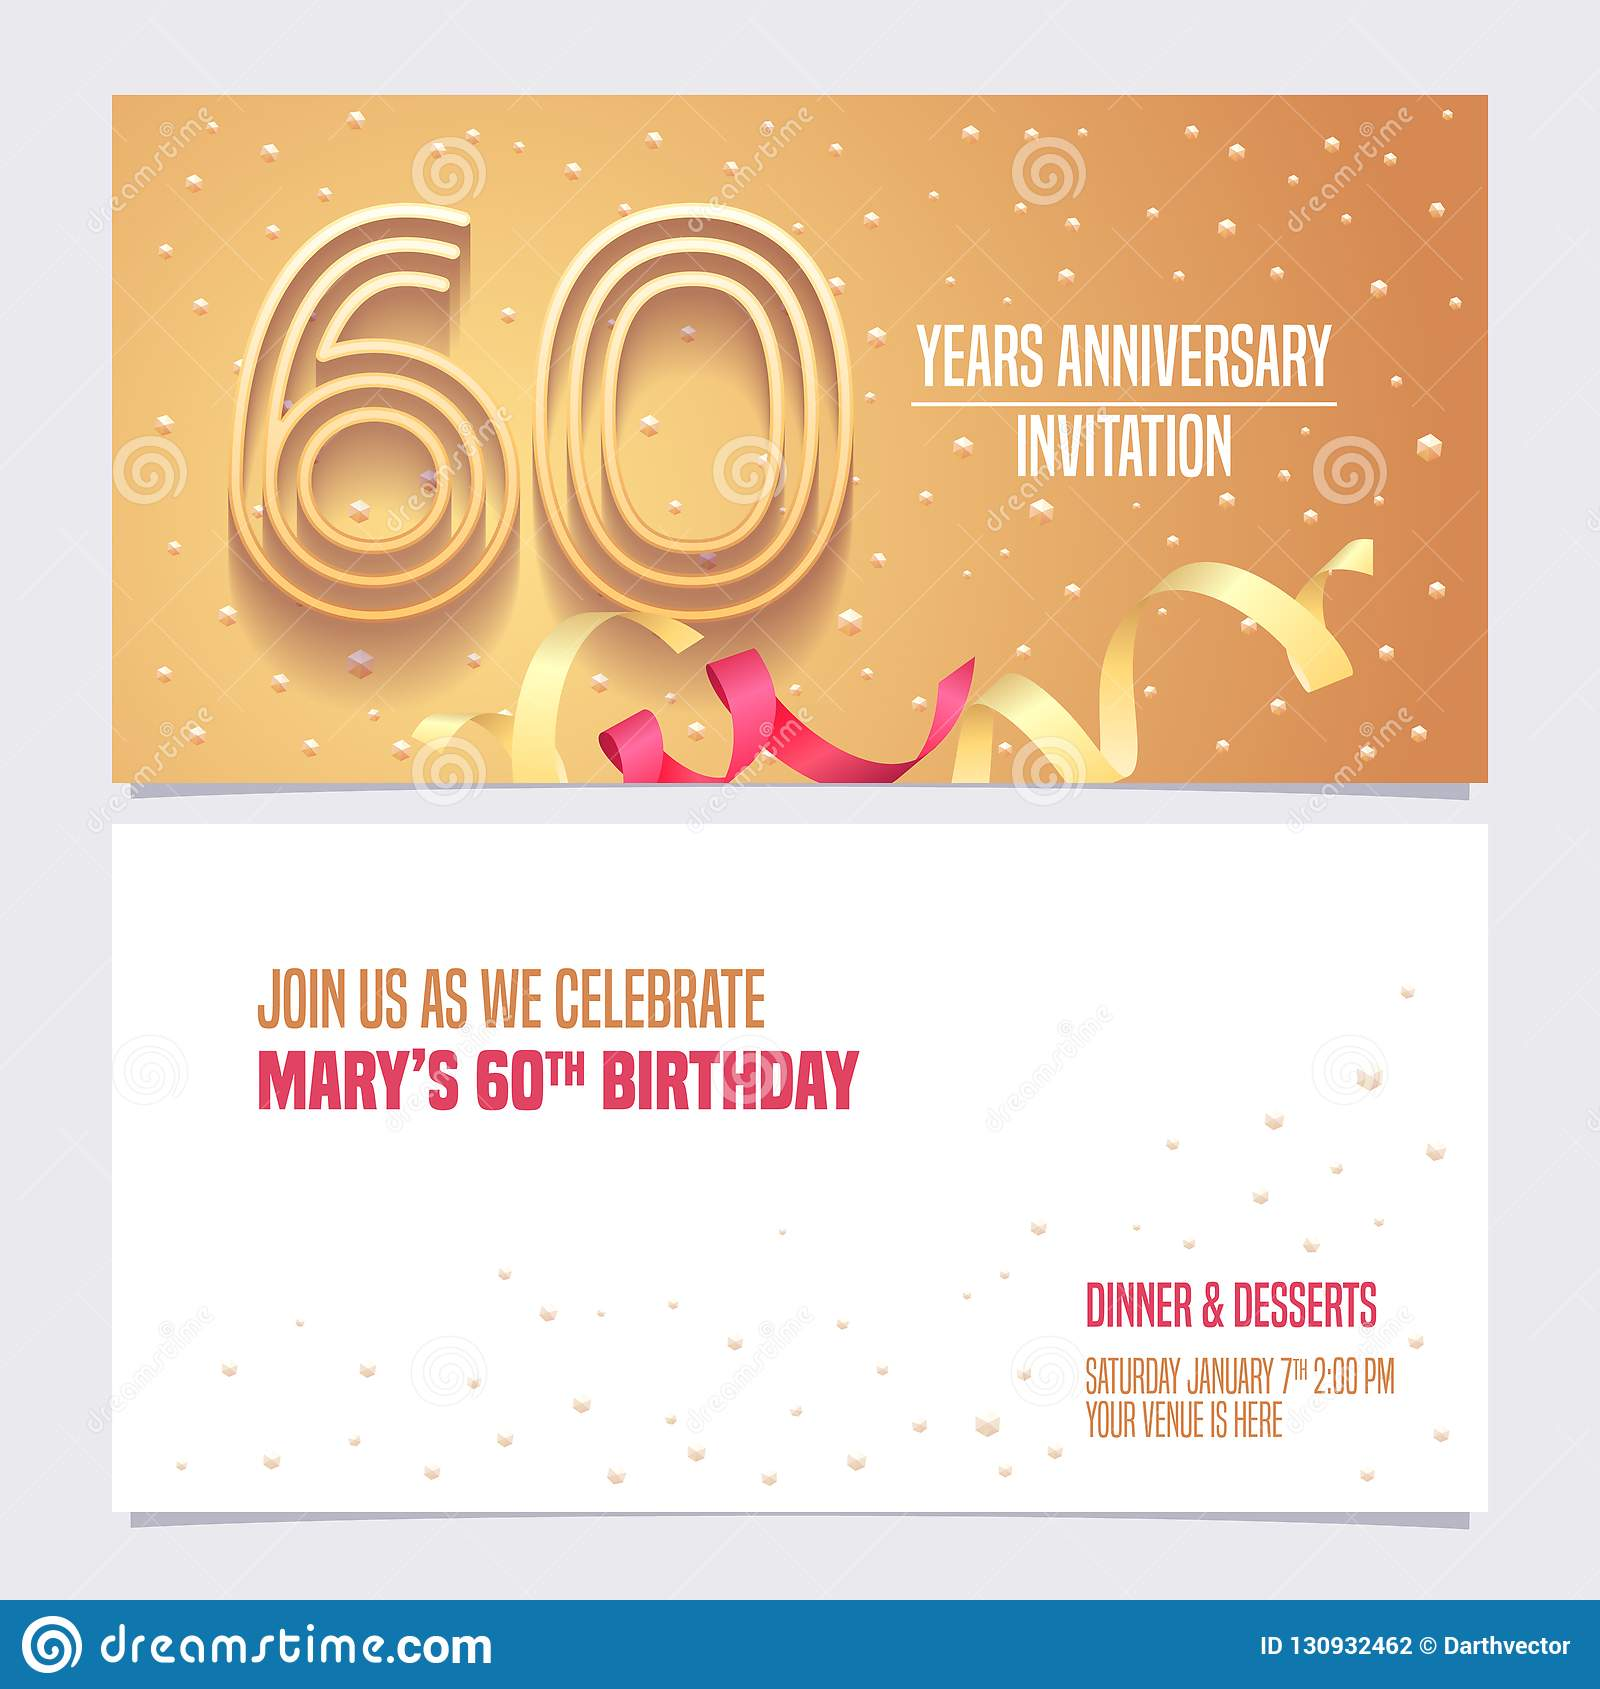 60 Years Anniversary Invitation Vector Illustration Design Element With Golden Abstract Background For 60th Birthday Card Party Invite